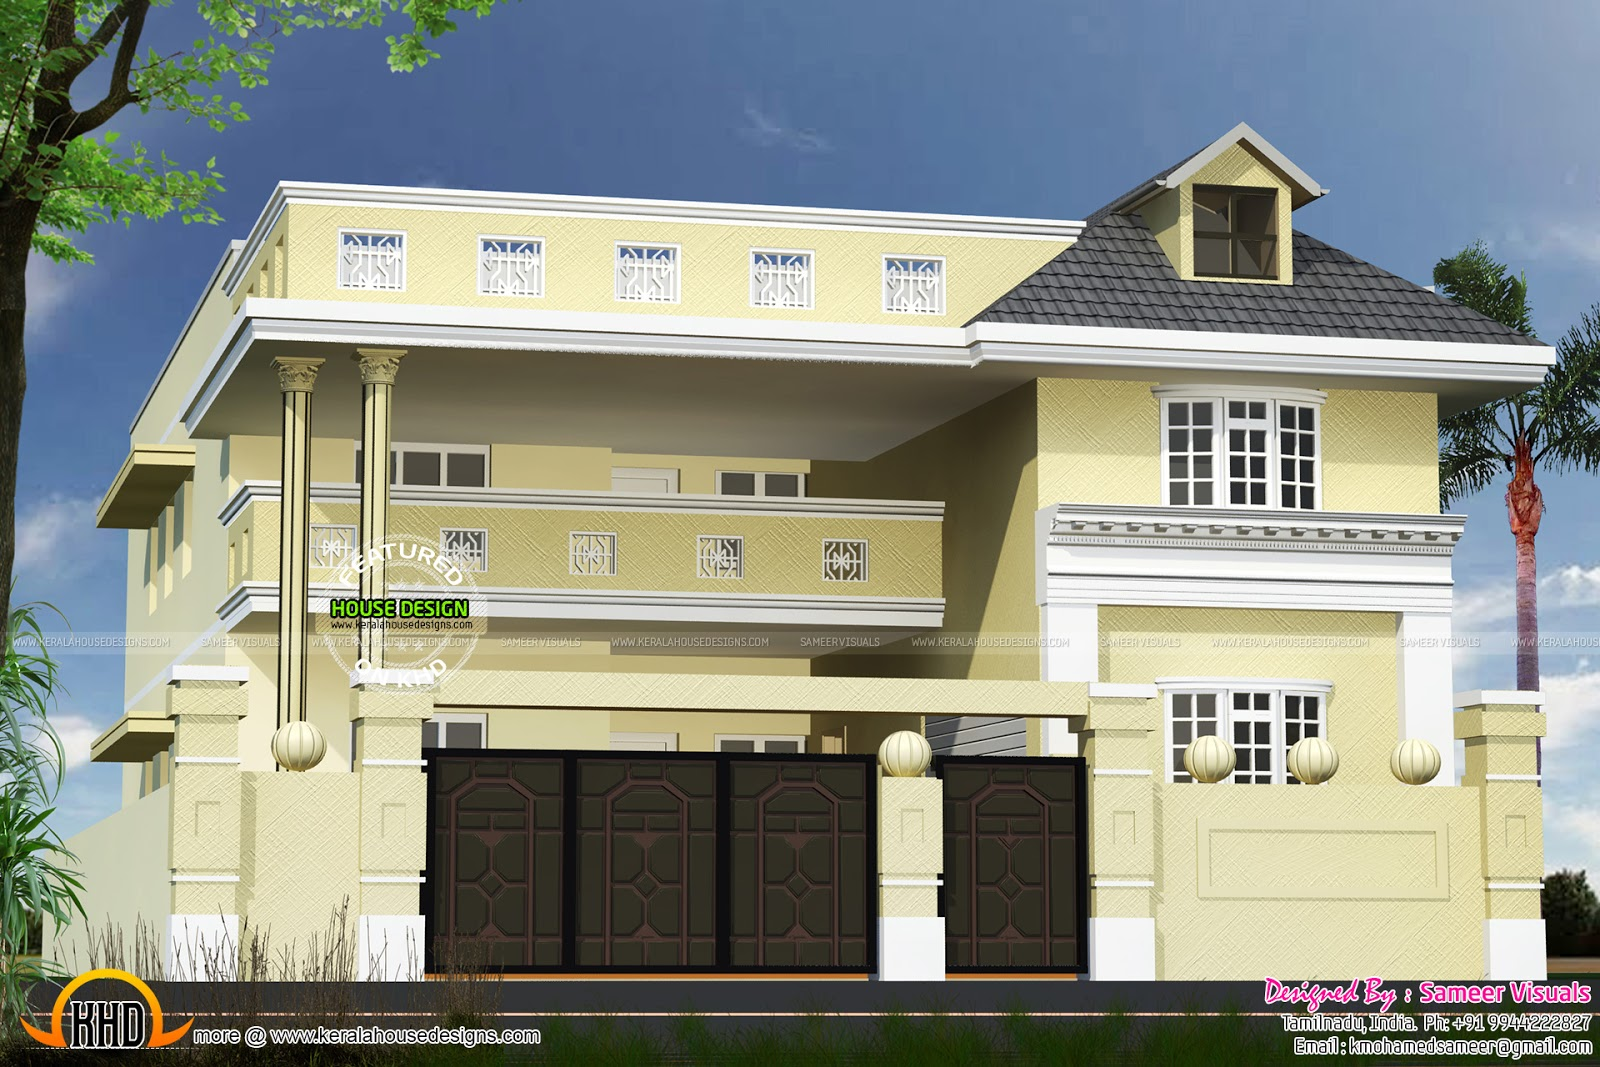 3265 sq ft tamilnadu house design kerala home design and for Tamilnadu house designs photos